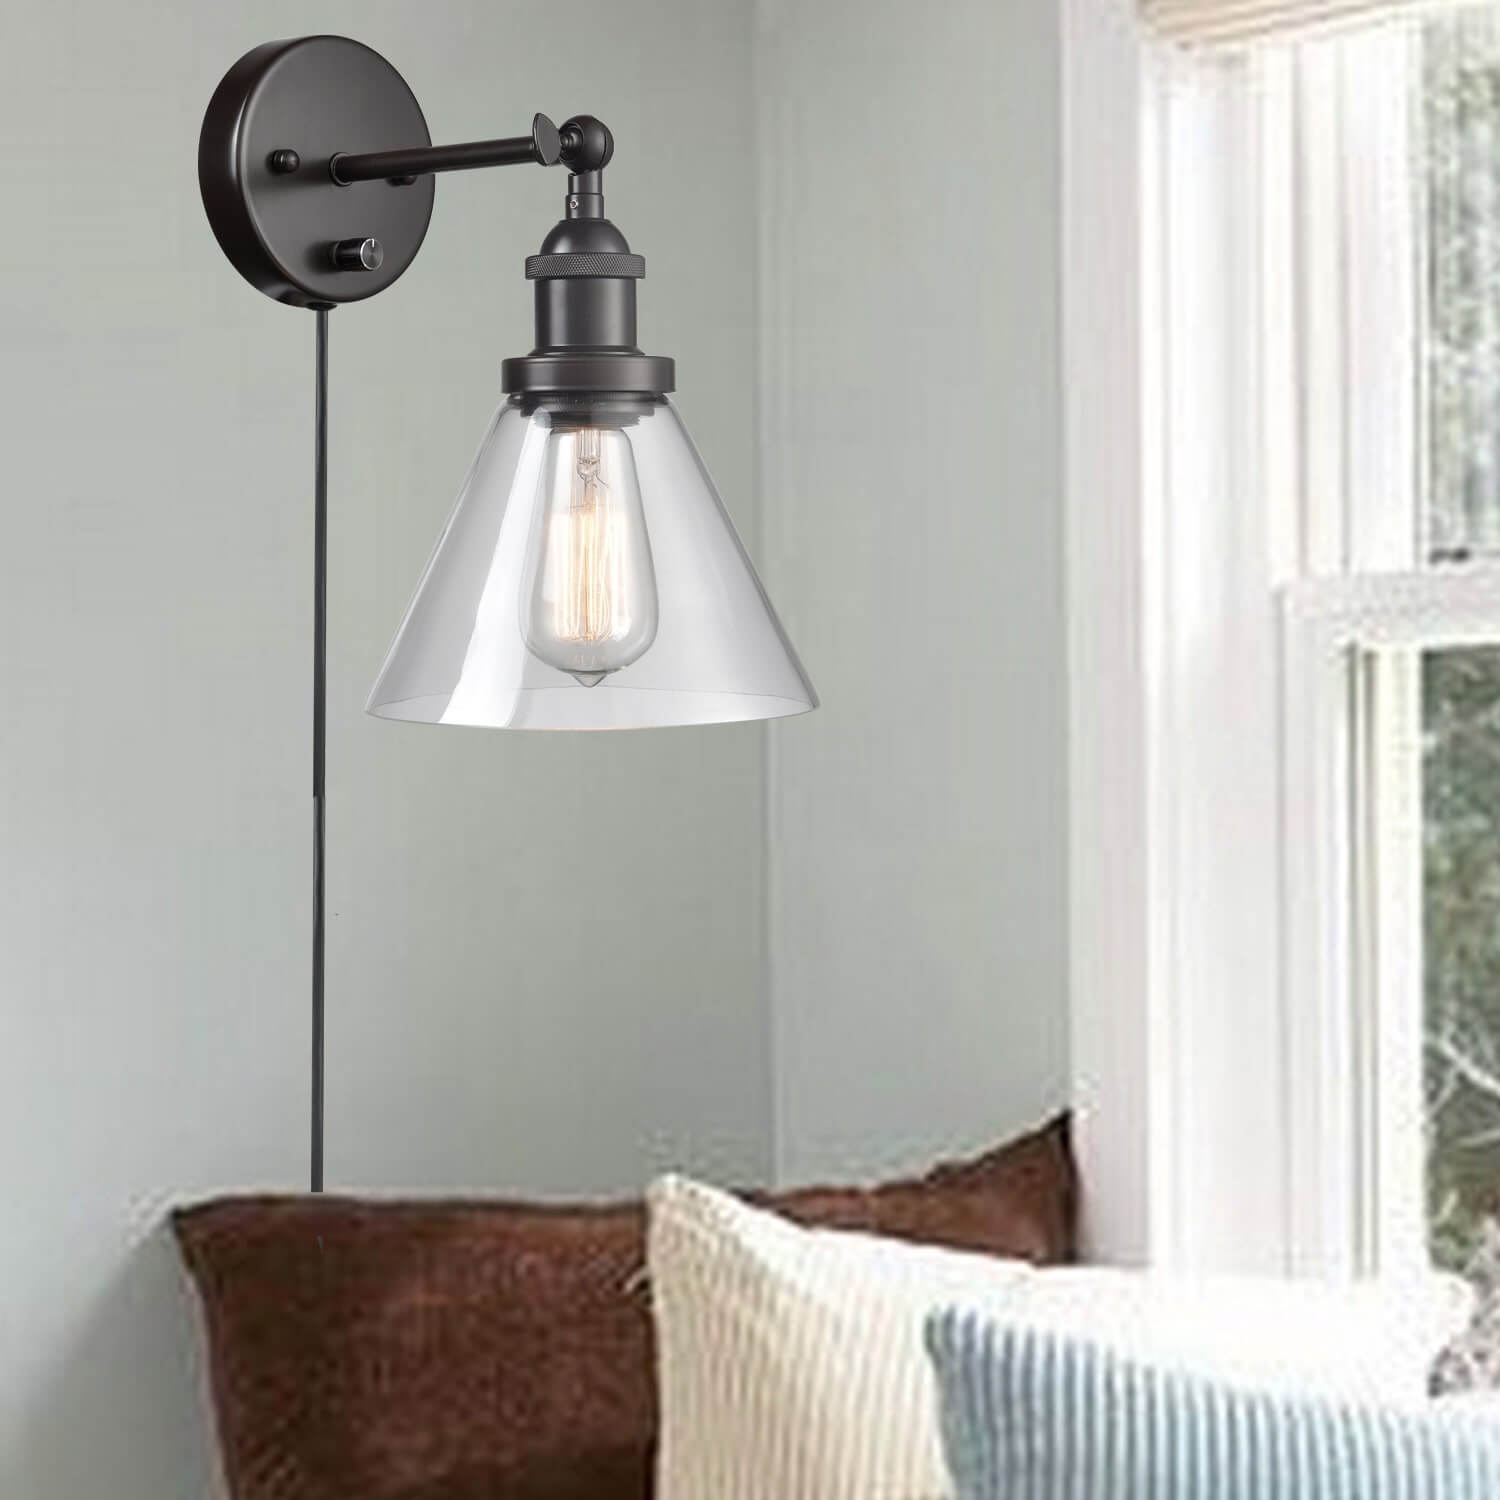 Industrial Bronze Plug-In Wall Lights Set of 2 with Clear Glass Shade